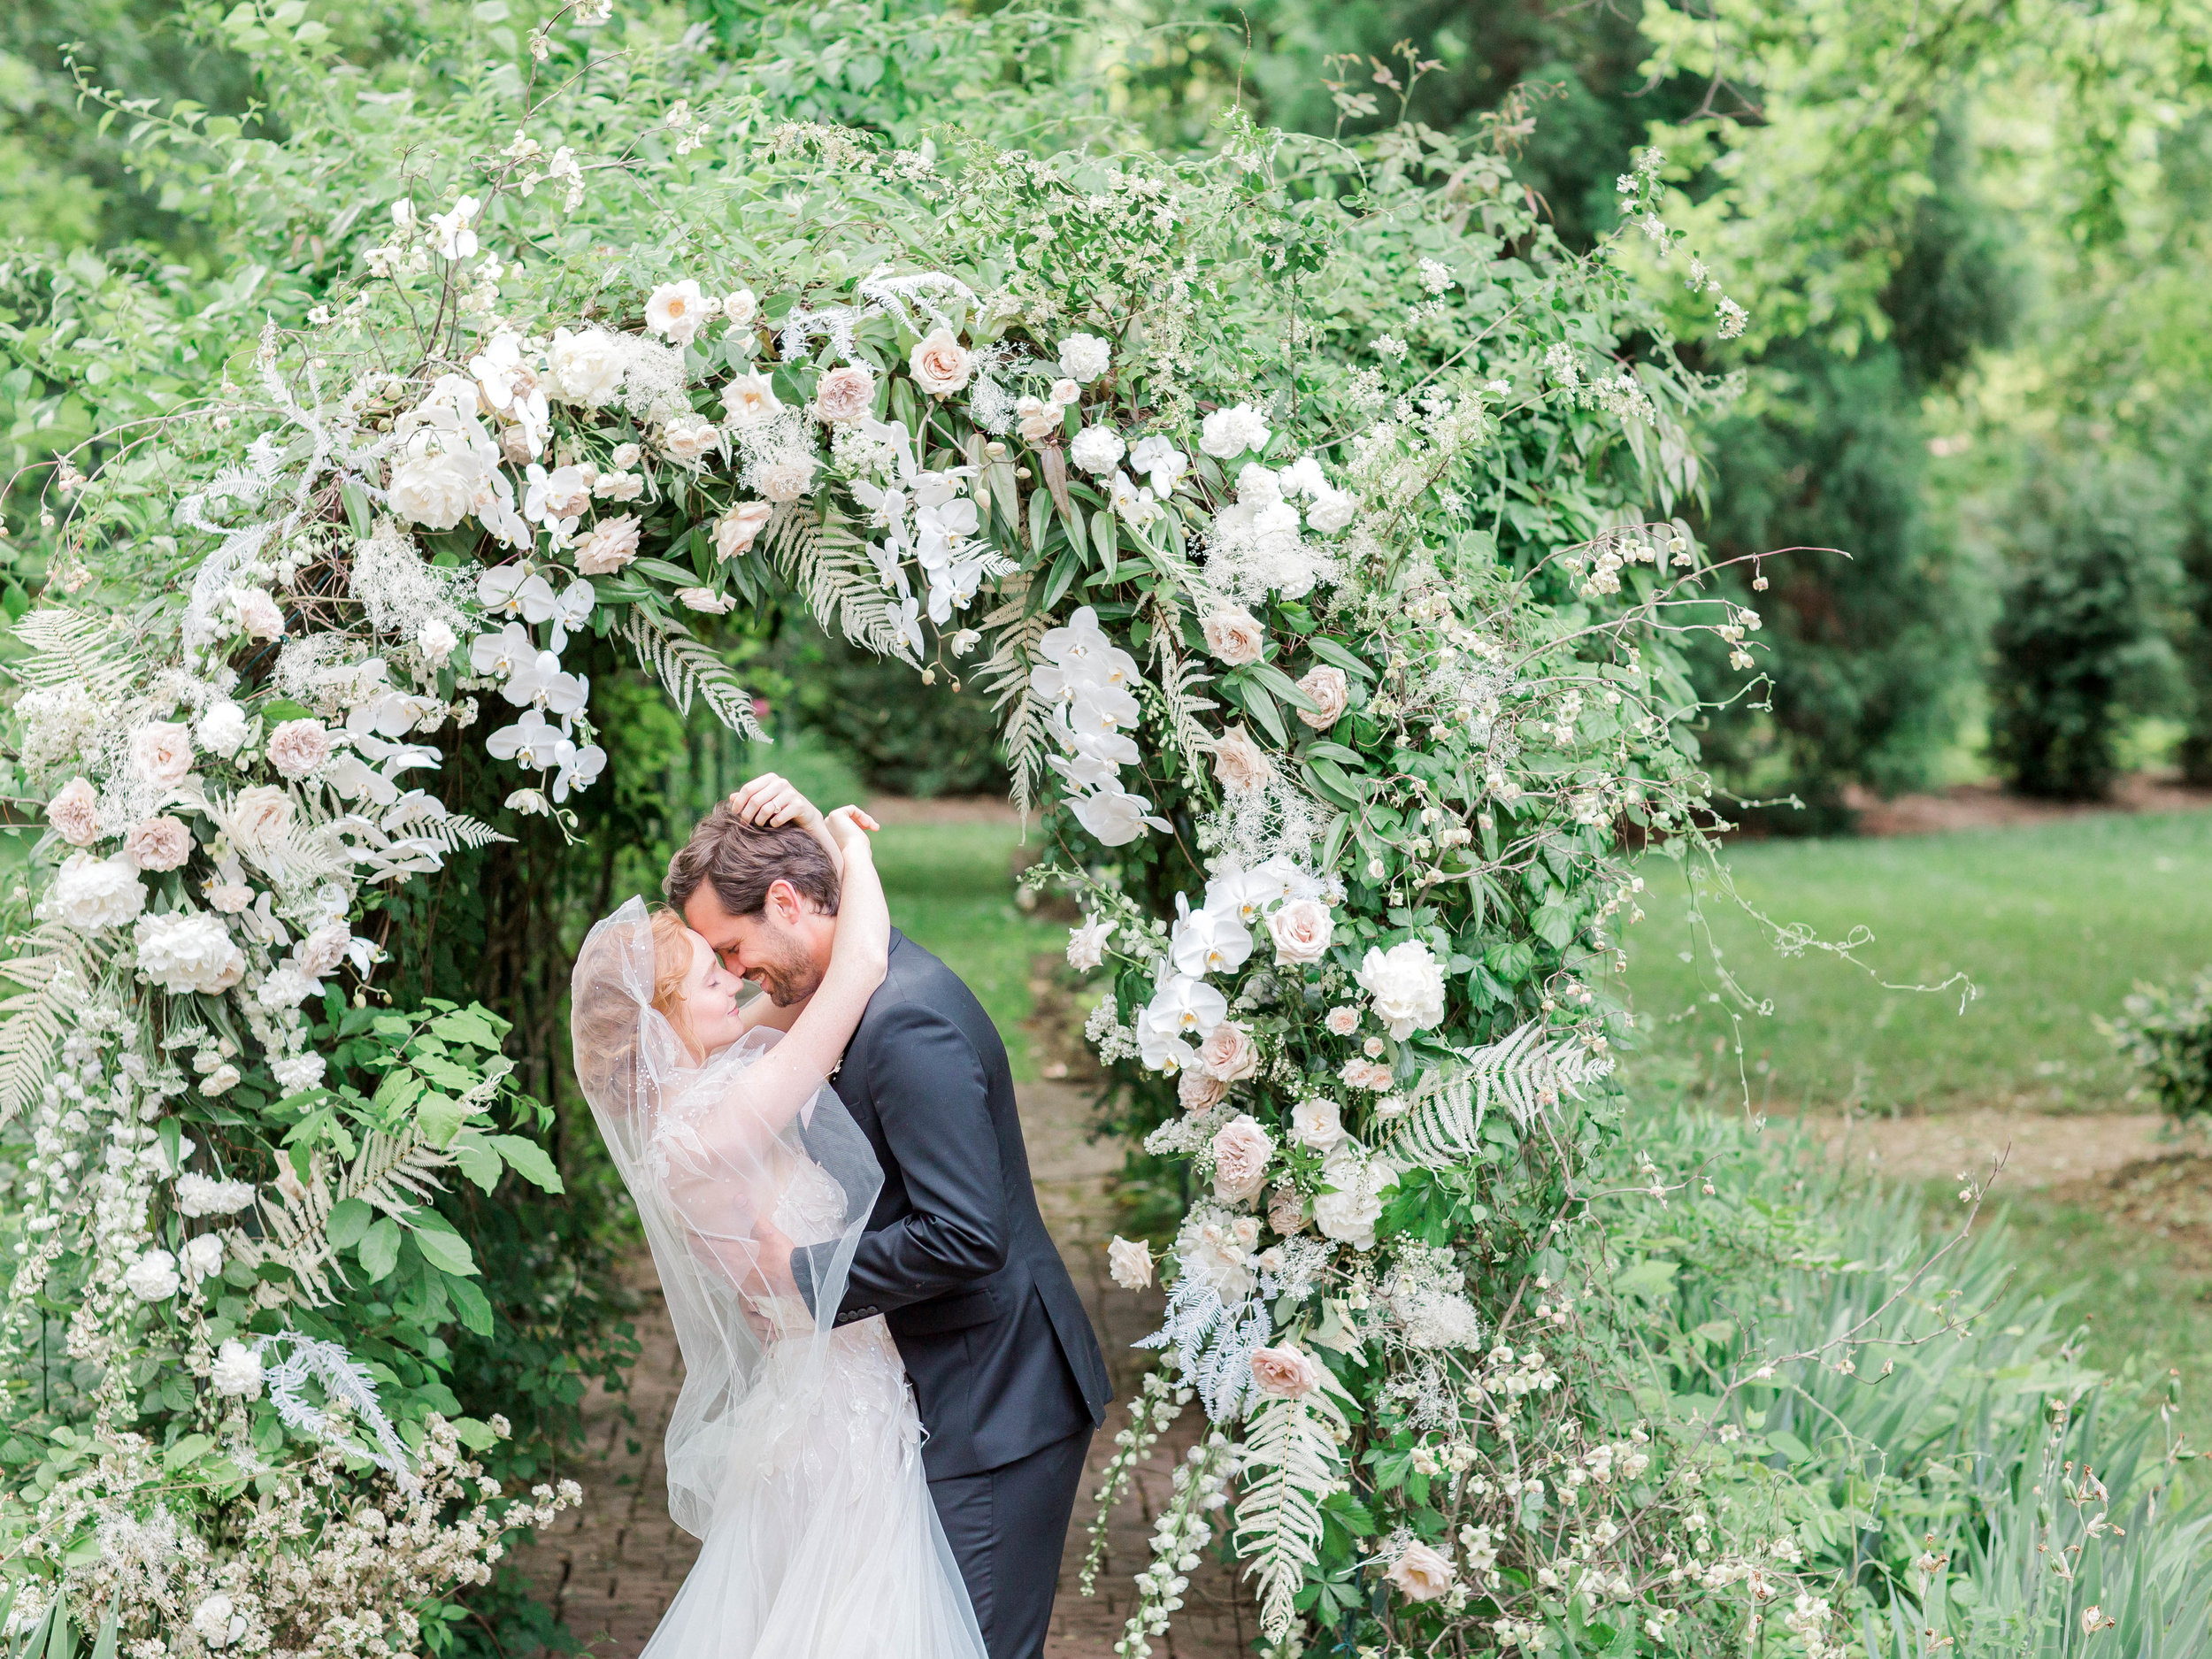 IMG_1878NashvilleWeddingPhotography_RiverwoodMansion_StephanieMasonPhotography.jpg